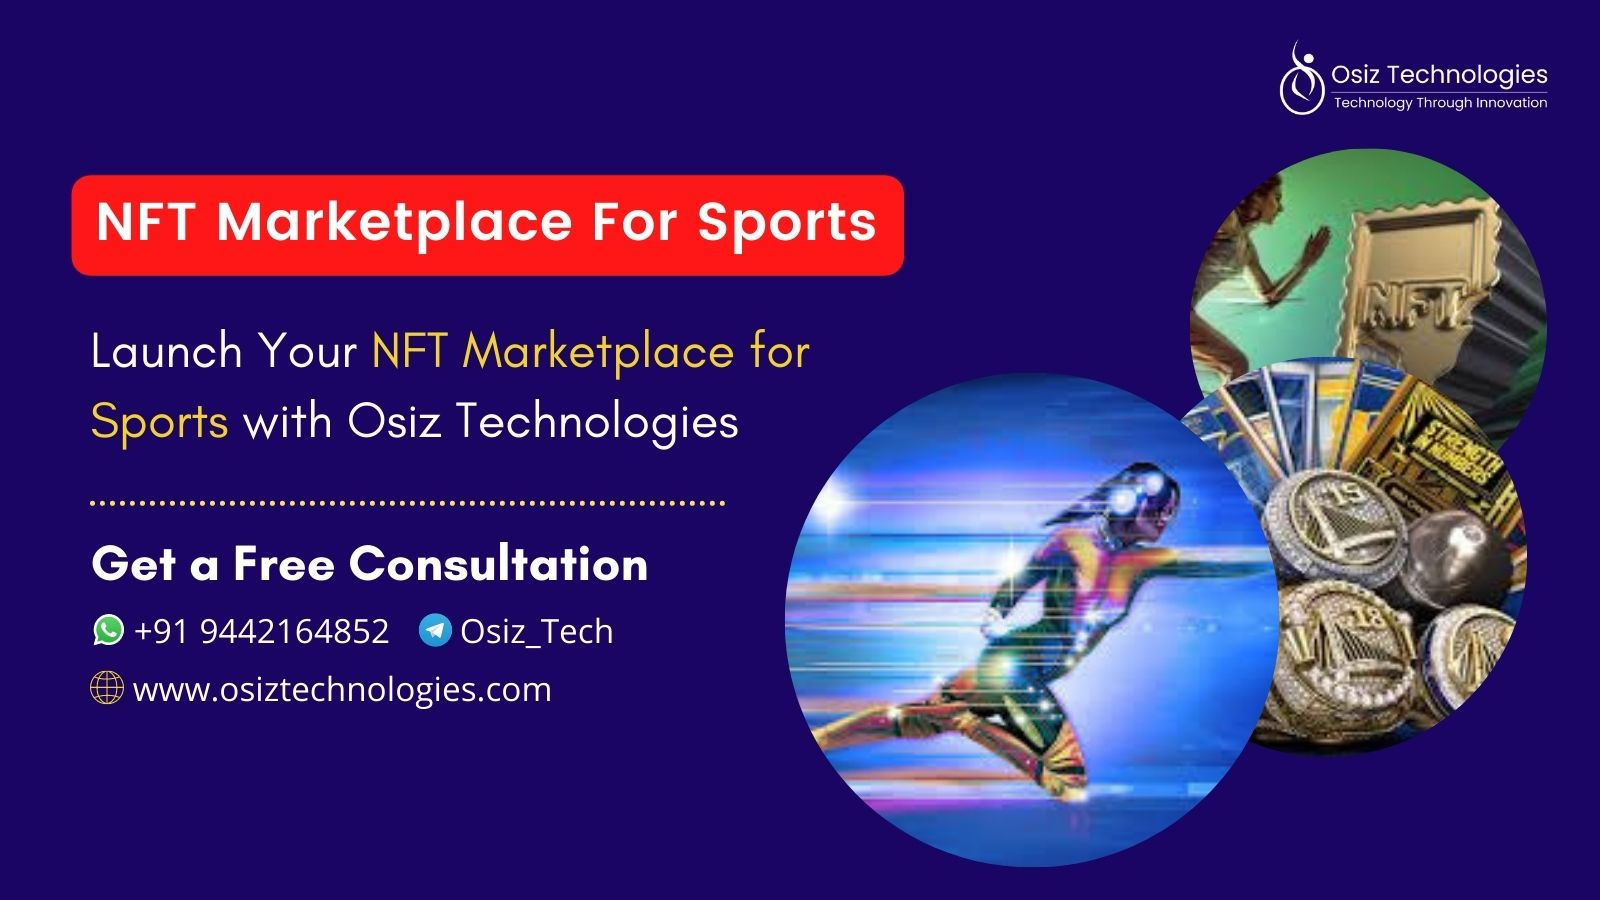 Develop Your Own NFT Marketplace For Sports